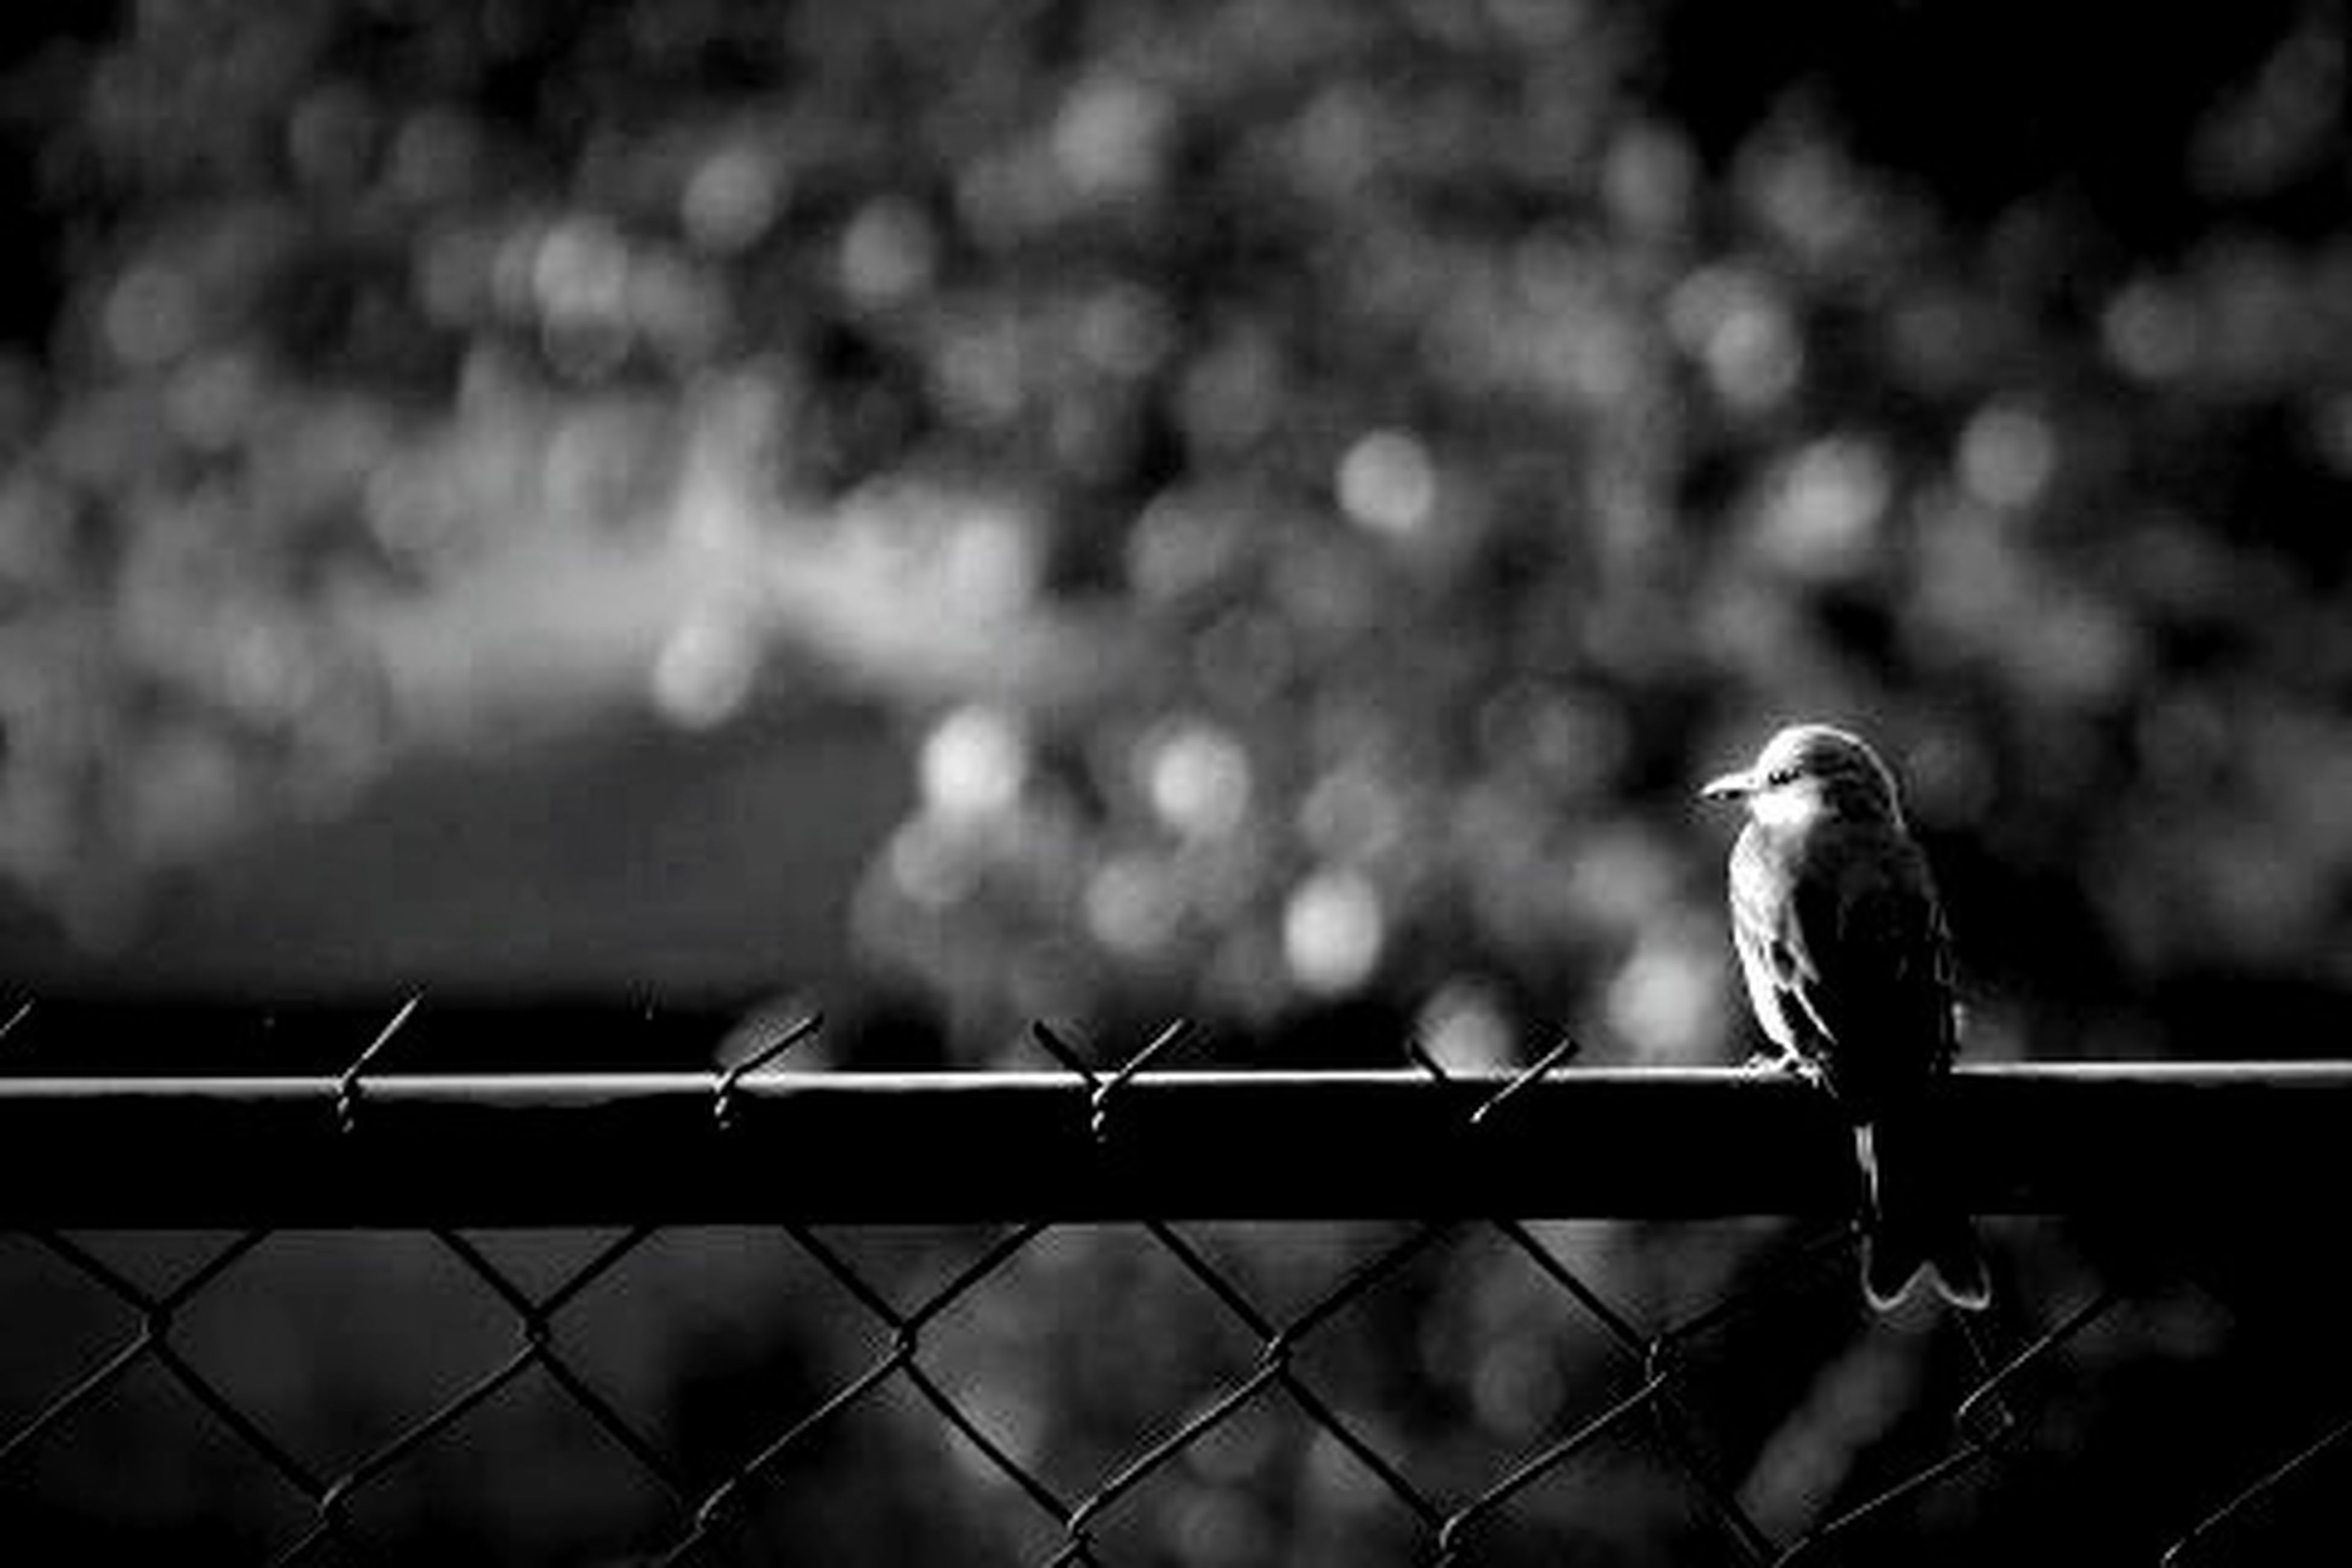 animal themes, bird, animals in the wild, wildlife, perching, one animal, focus on foreground, railing, fence, metal, close-up, full length, two animals, pigeon, outdoors, day, nature, selective focus, side view, no people